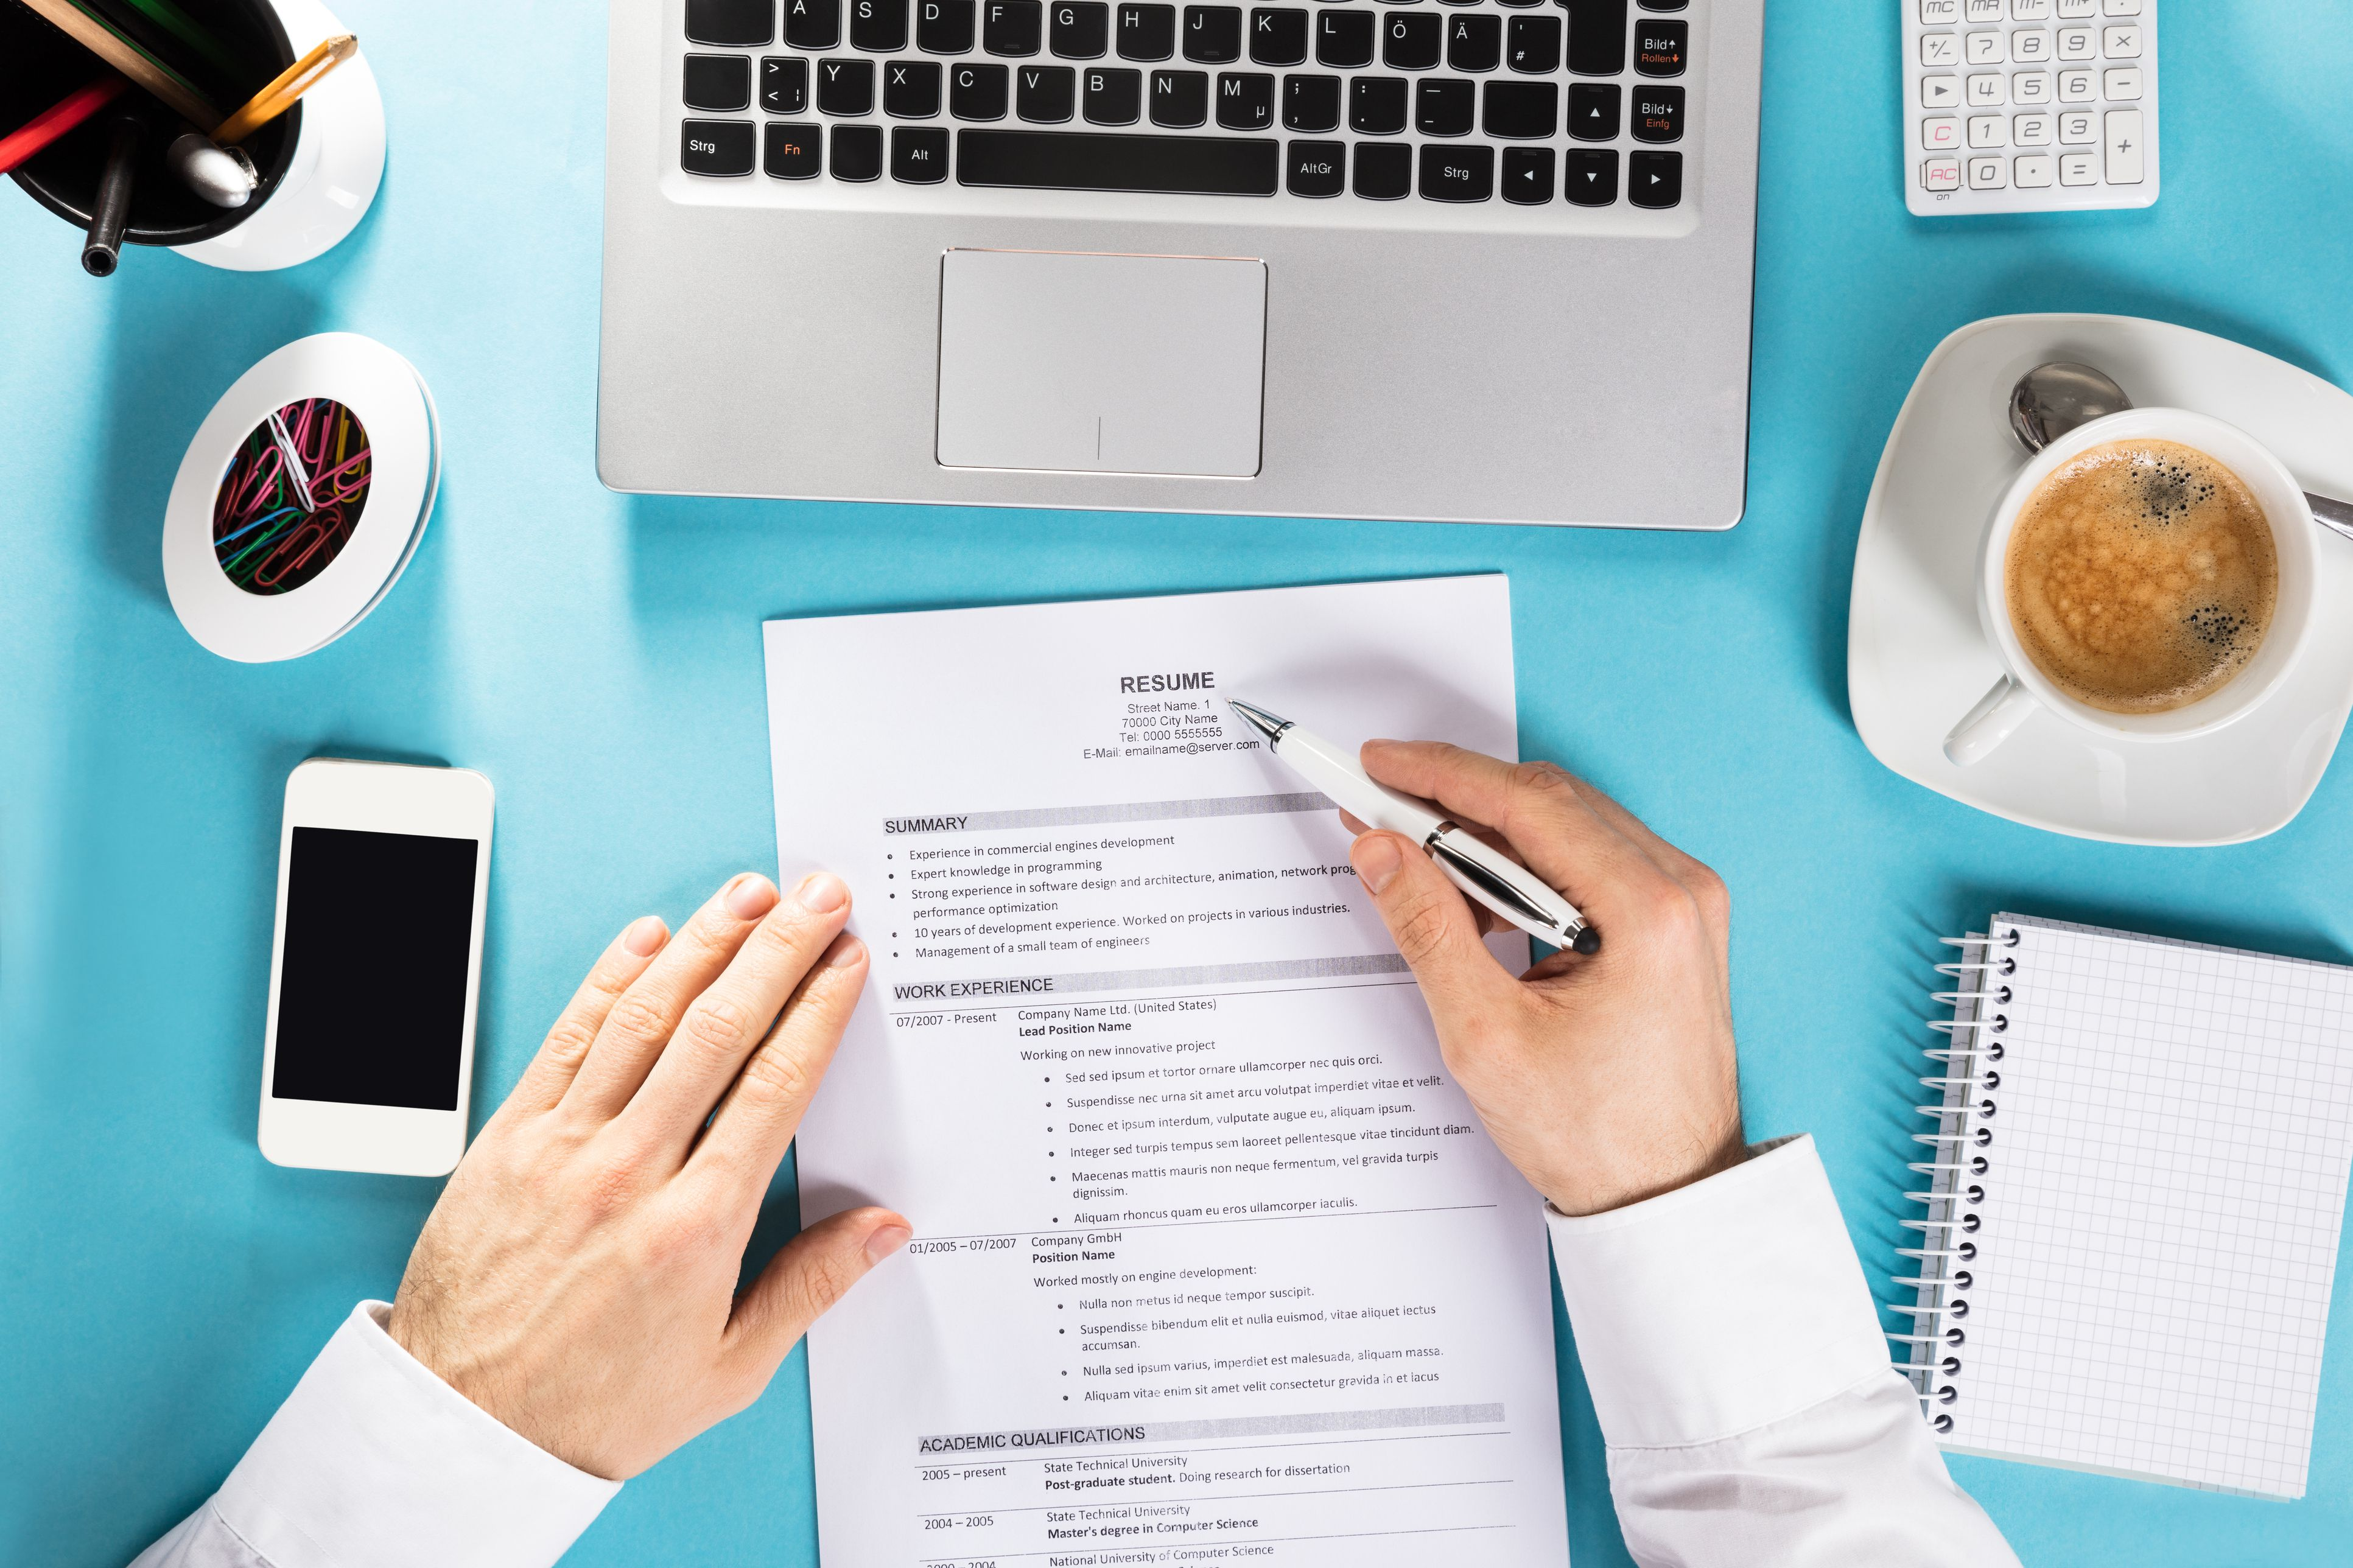 How to Include Part-Time and Temporary Work on a Resume